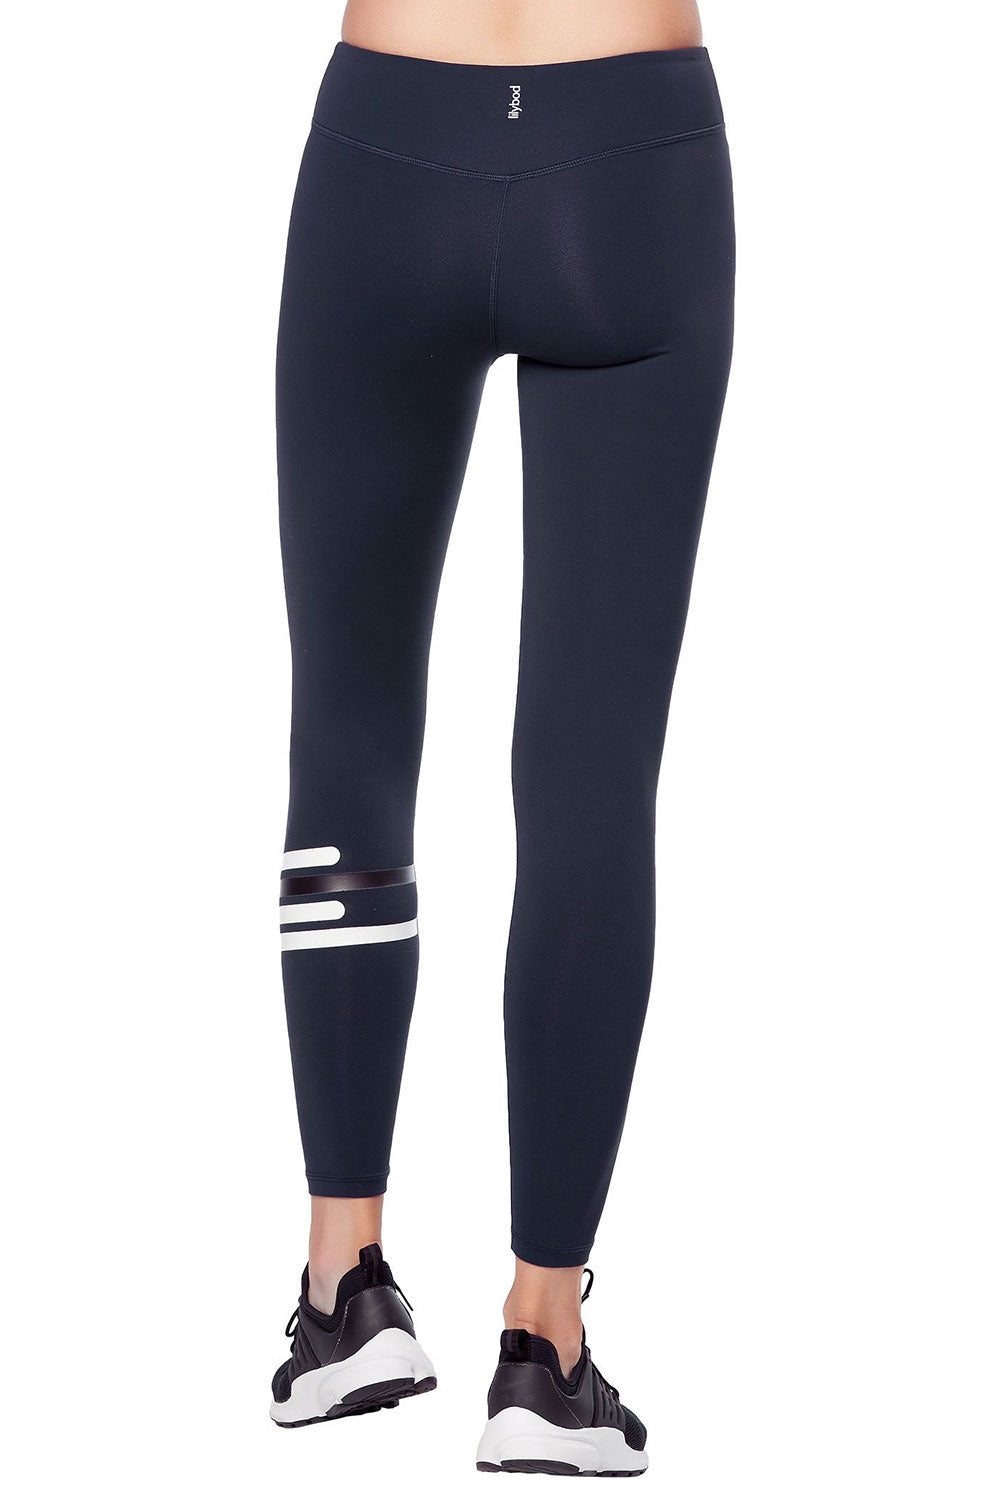 Lilybod Fleur Legging - Midnight Zero - Sculptique